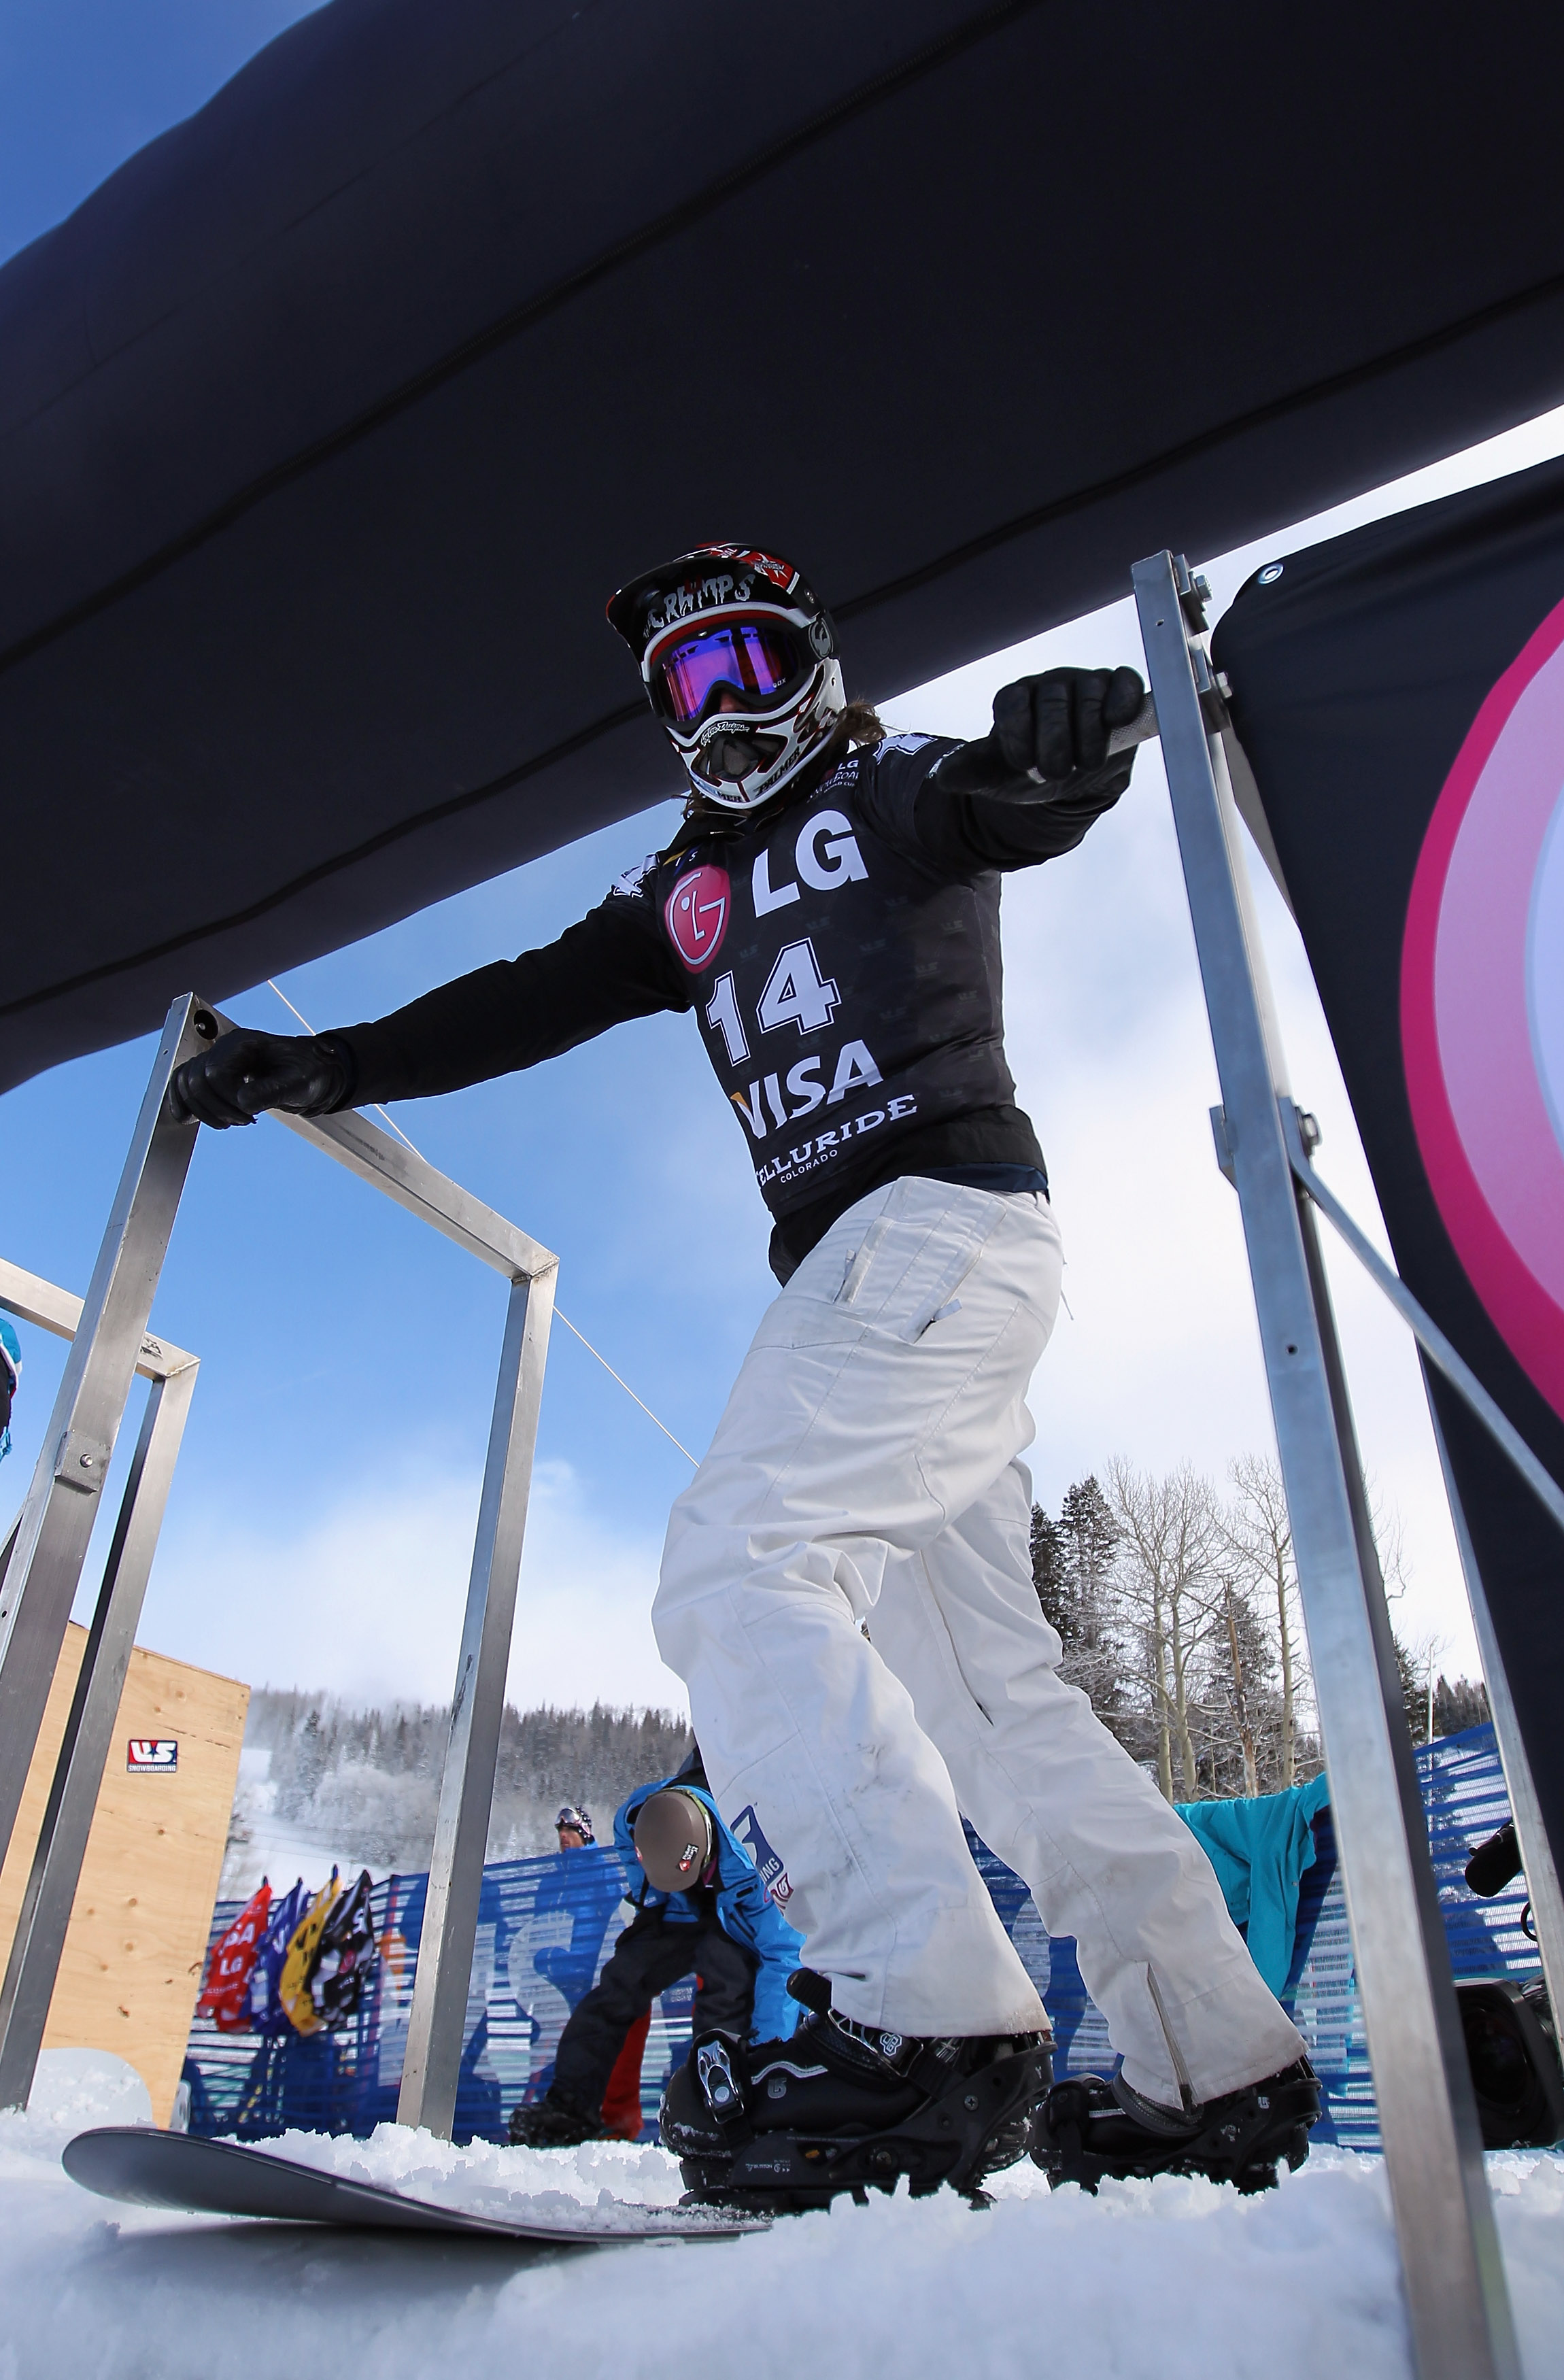 TELLURIDE, CO - DECEMBER 17:  Shaun Palmer of the USA takes to the gate for inspection before the Snowboard Cross at the LG Snowboard FIS World Cup on December 17, 2010 in Telluride, Colorado.  (Photo by Doug Pensinger/Getty Images)